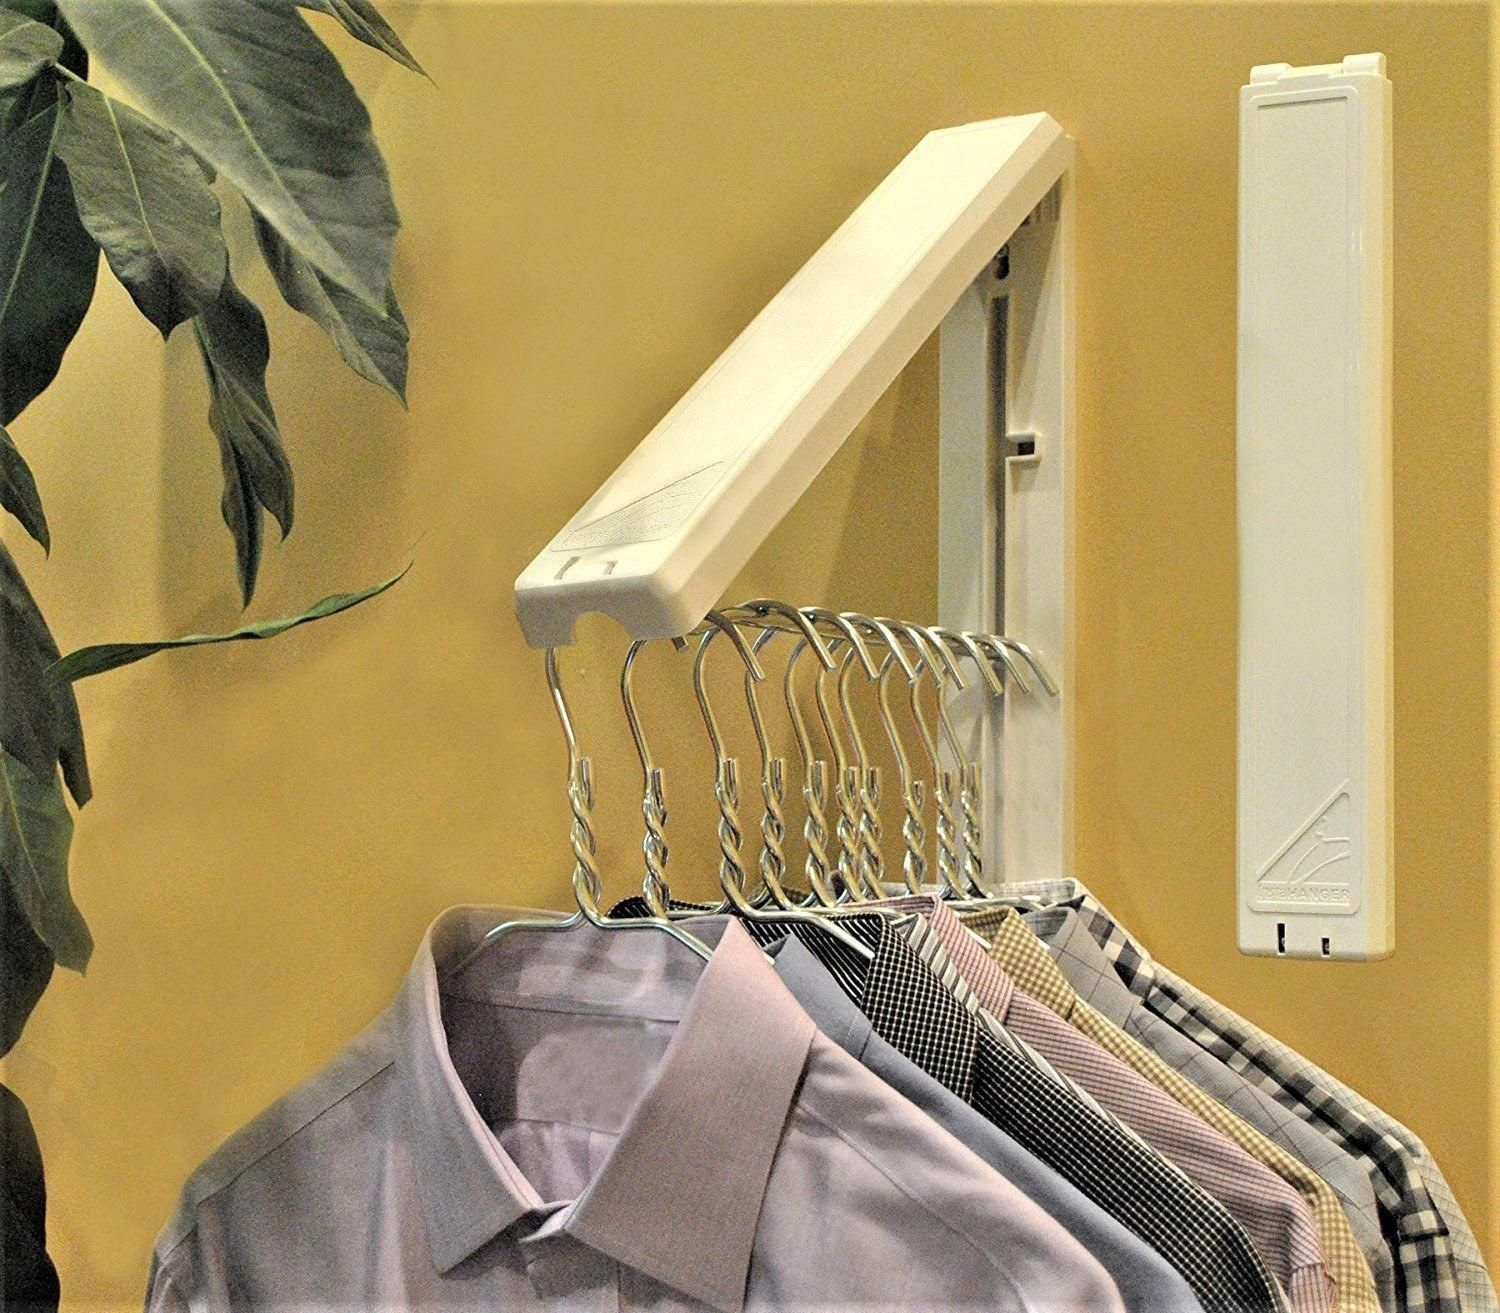 Attach An Expandable Clothes Rack To An Out Of The Way Corner Of